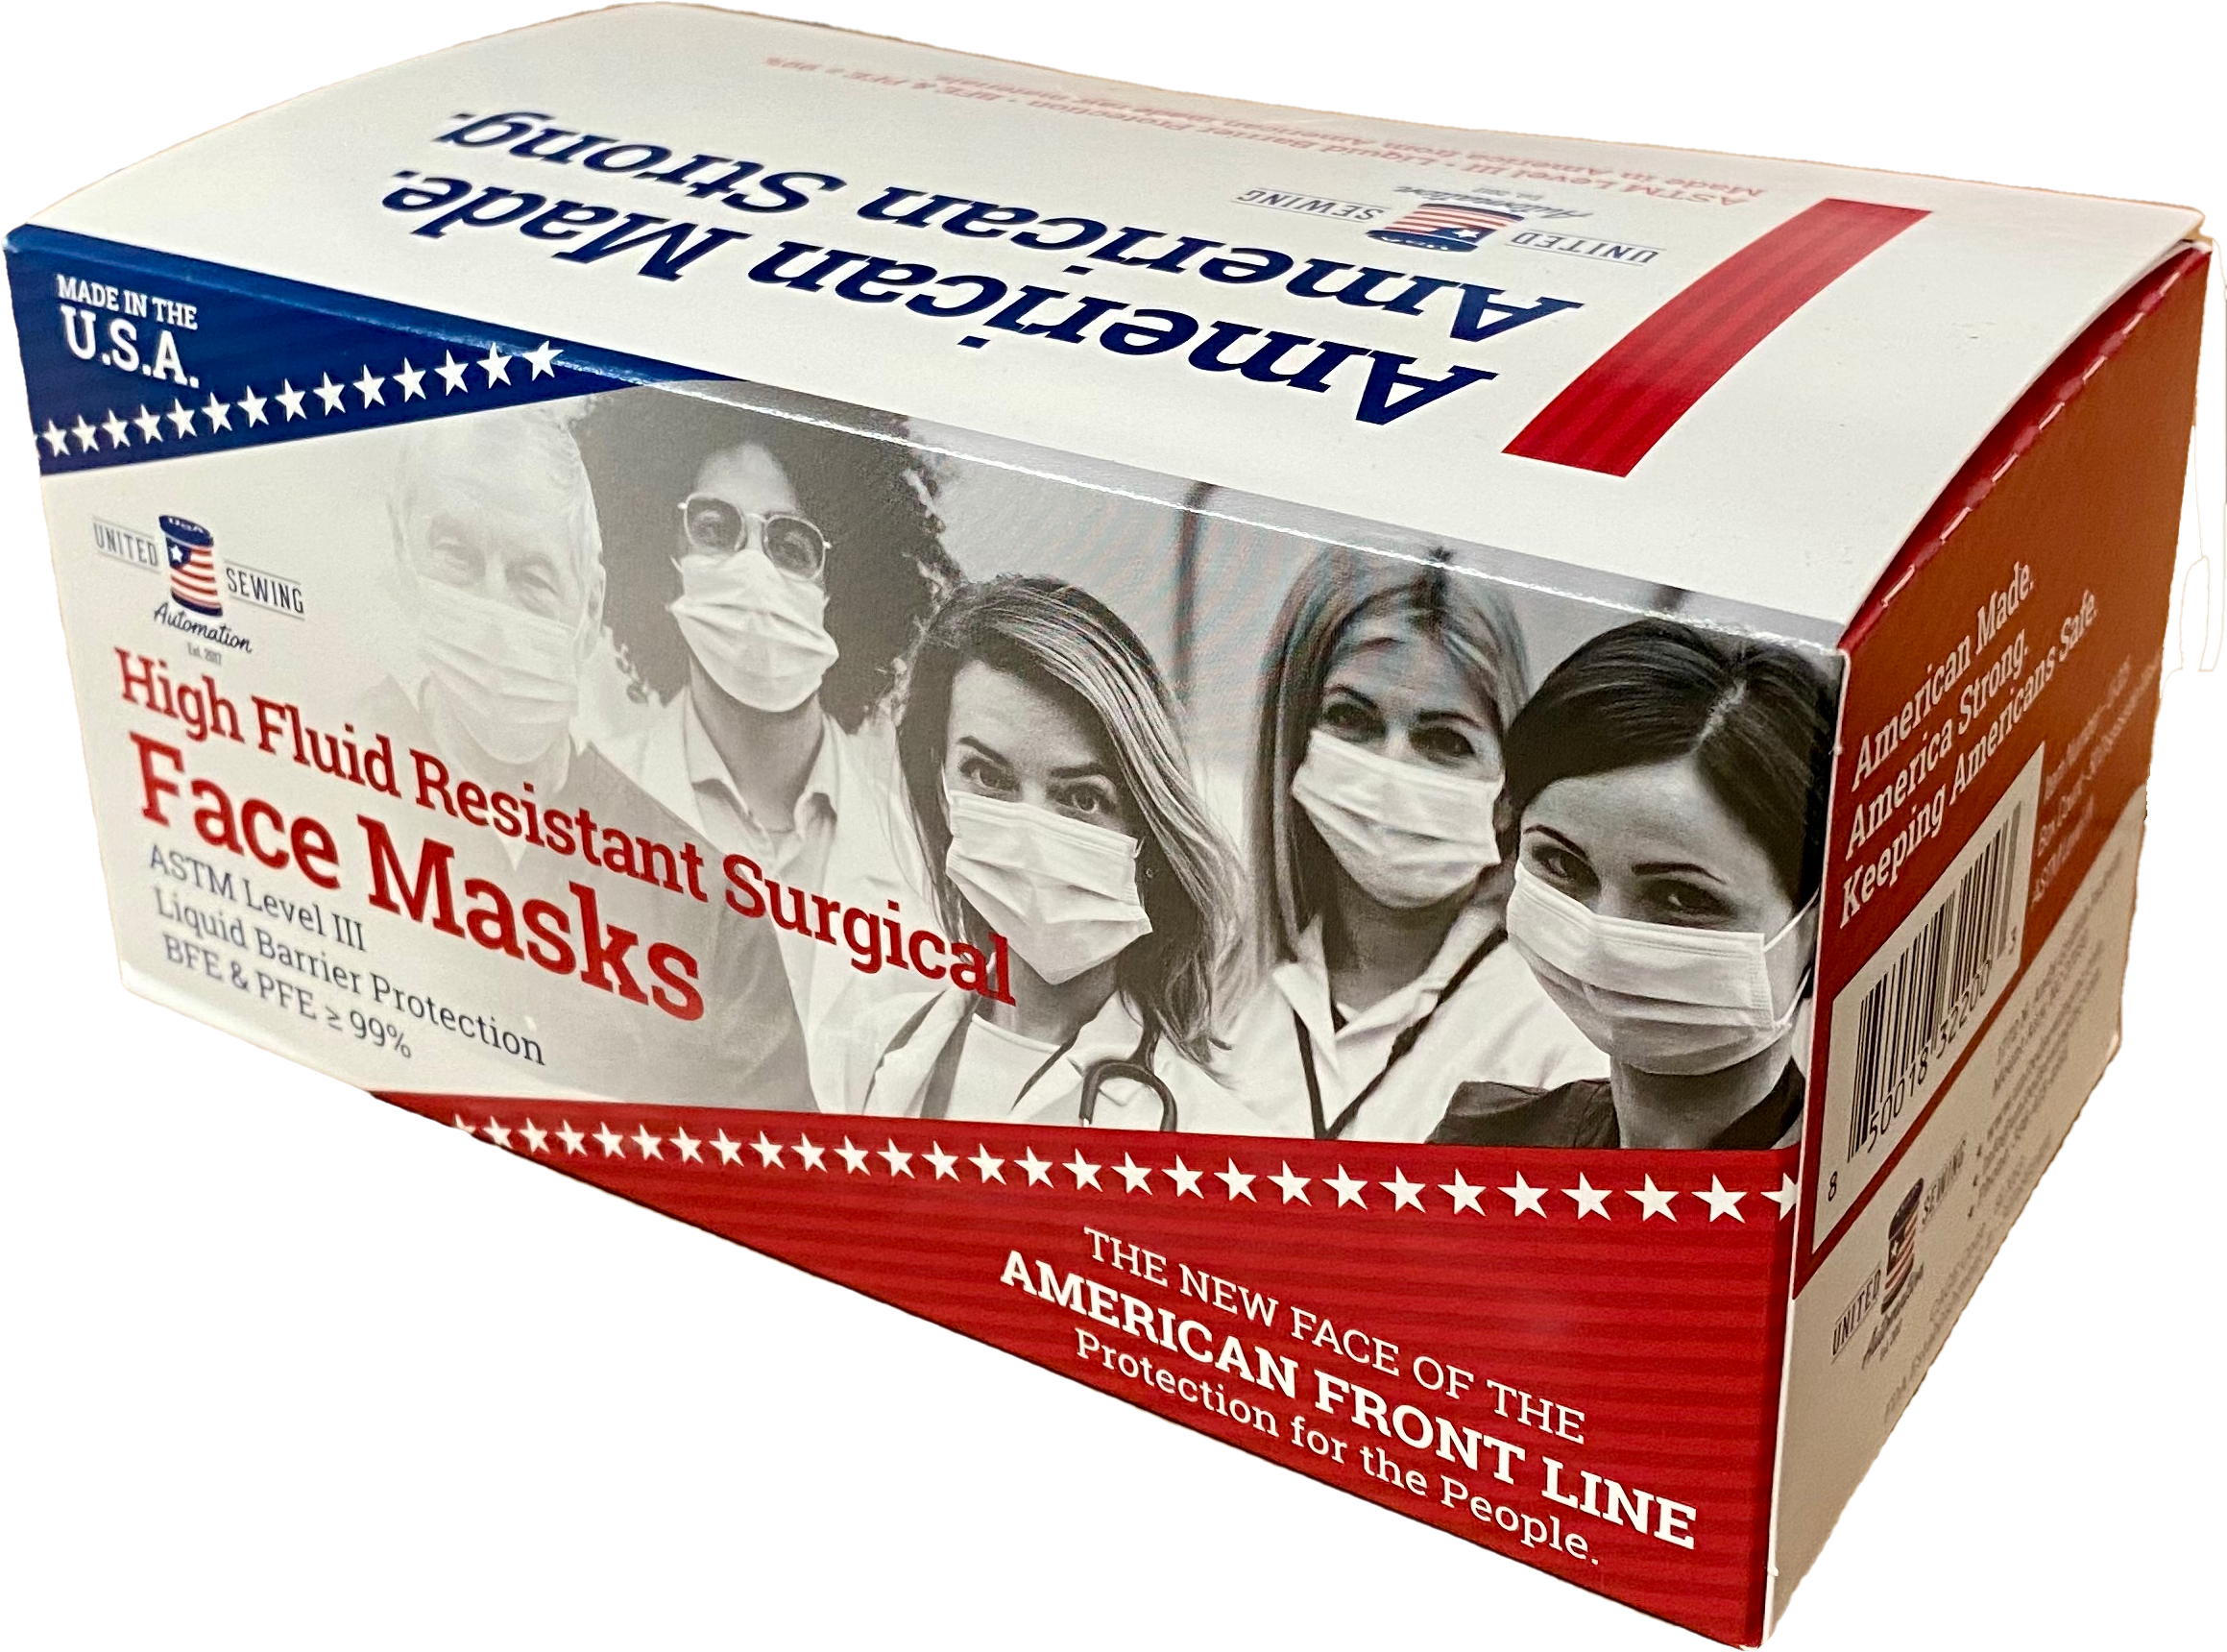 MADE IN USA - ASTM Level 3 -510K FDA- 3-ply Disposable Face Masks - Box of 50 masks